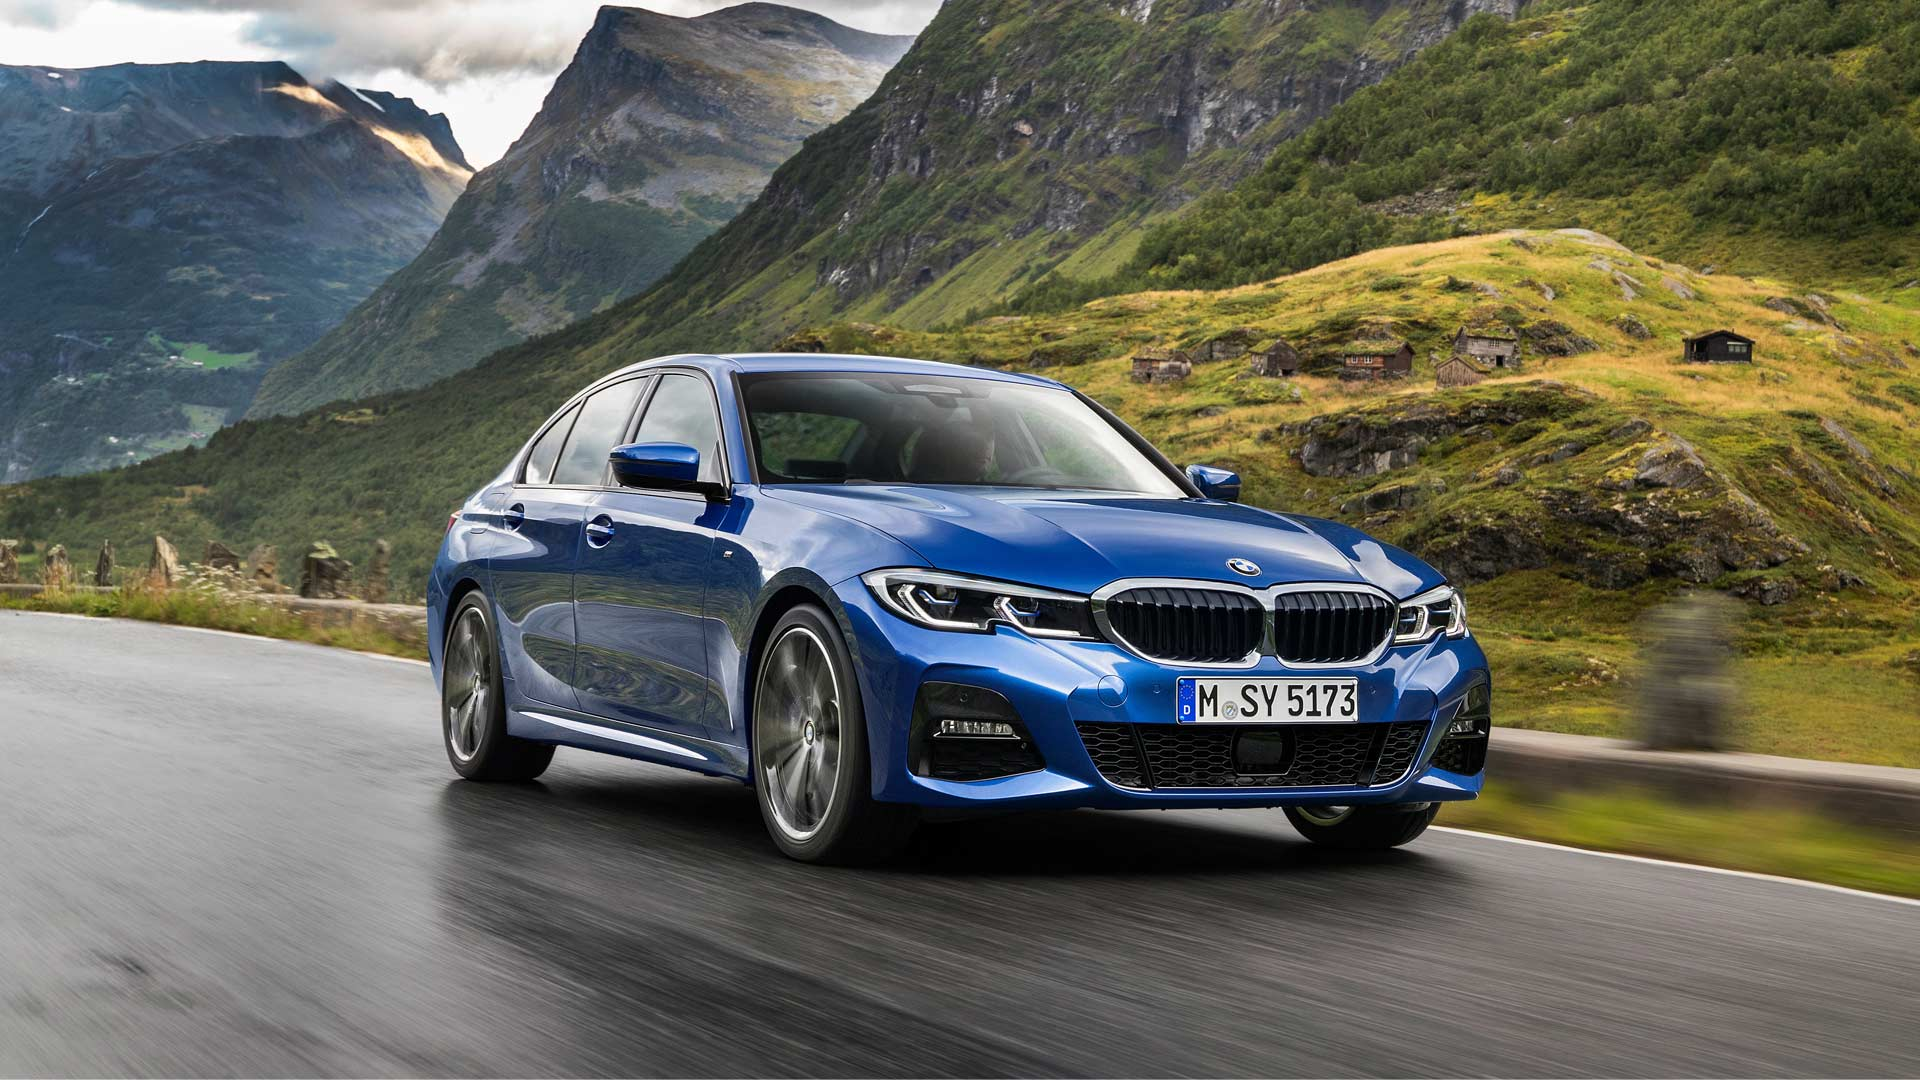 7th Generation Bmw 3 Series Is Larger In Dimensions And Tech Autodevot